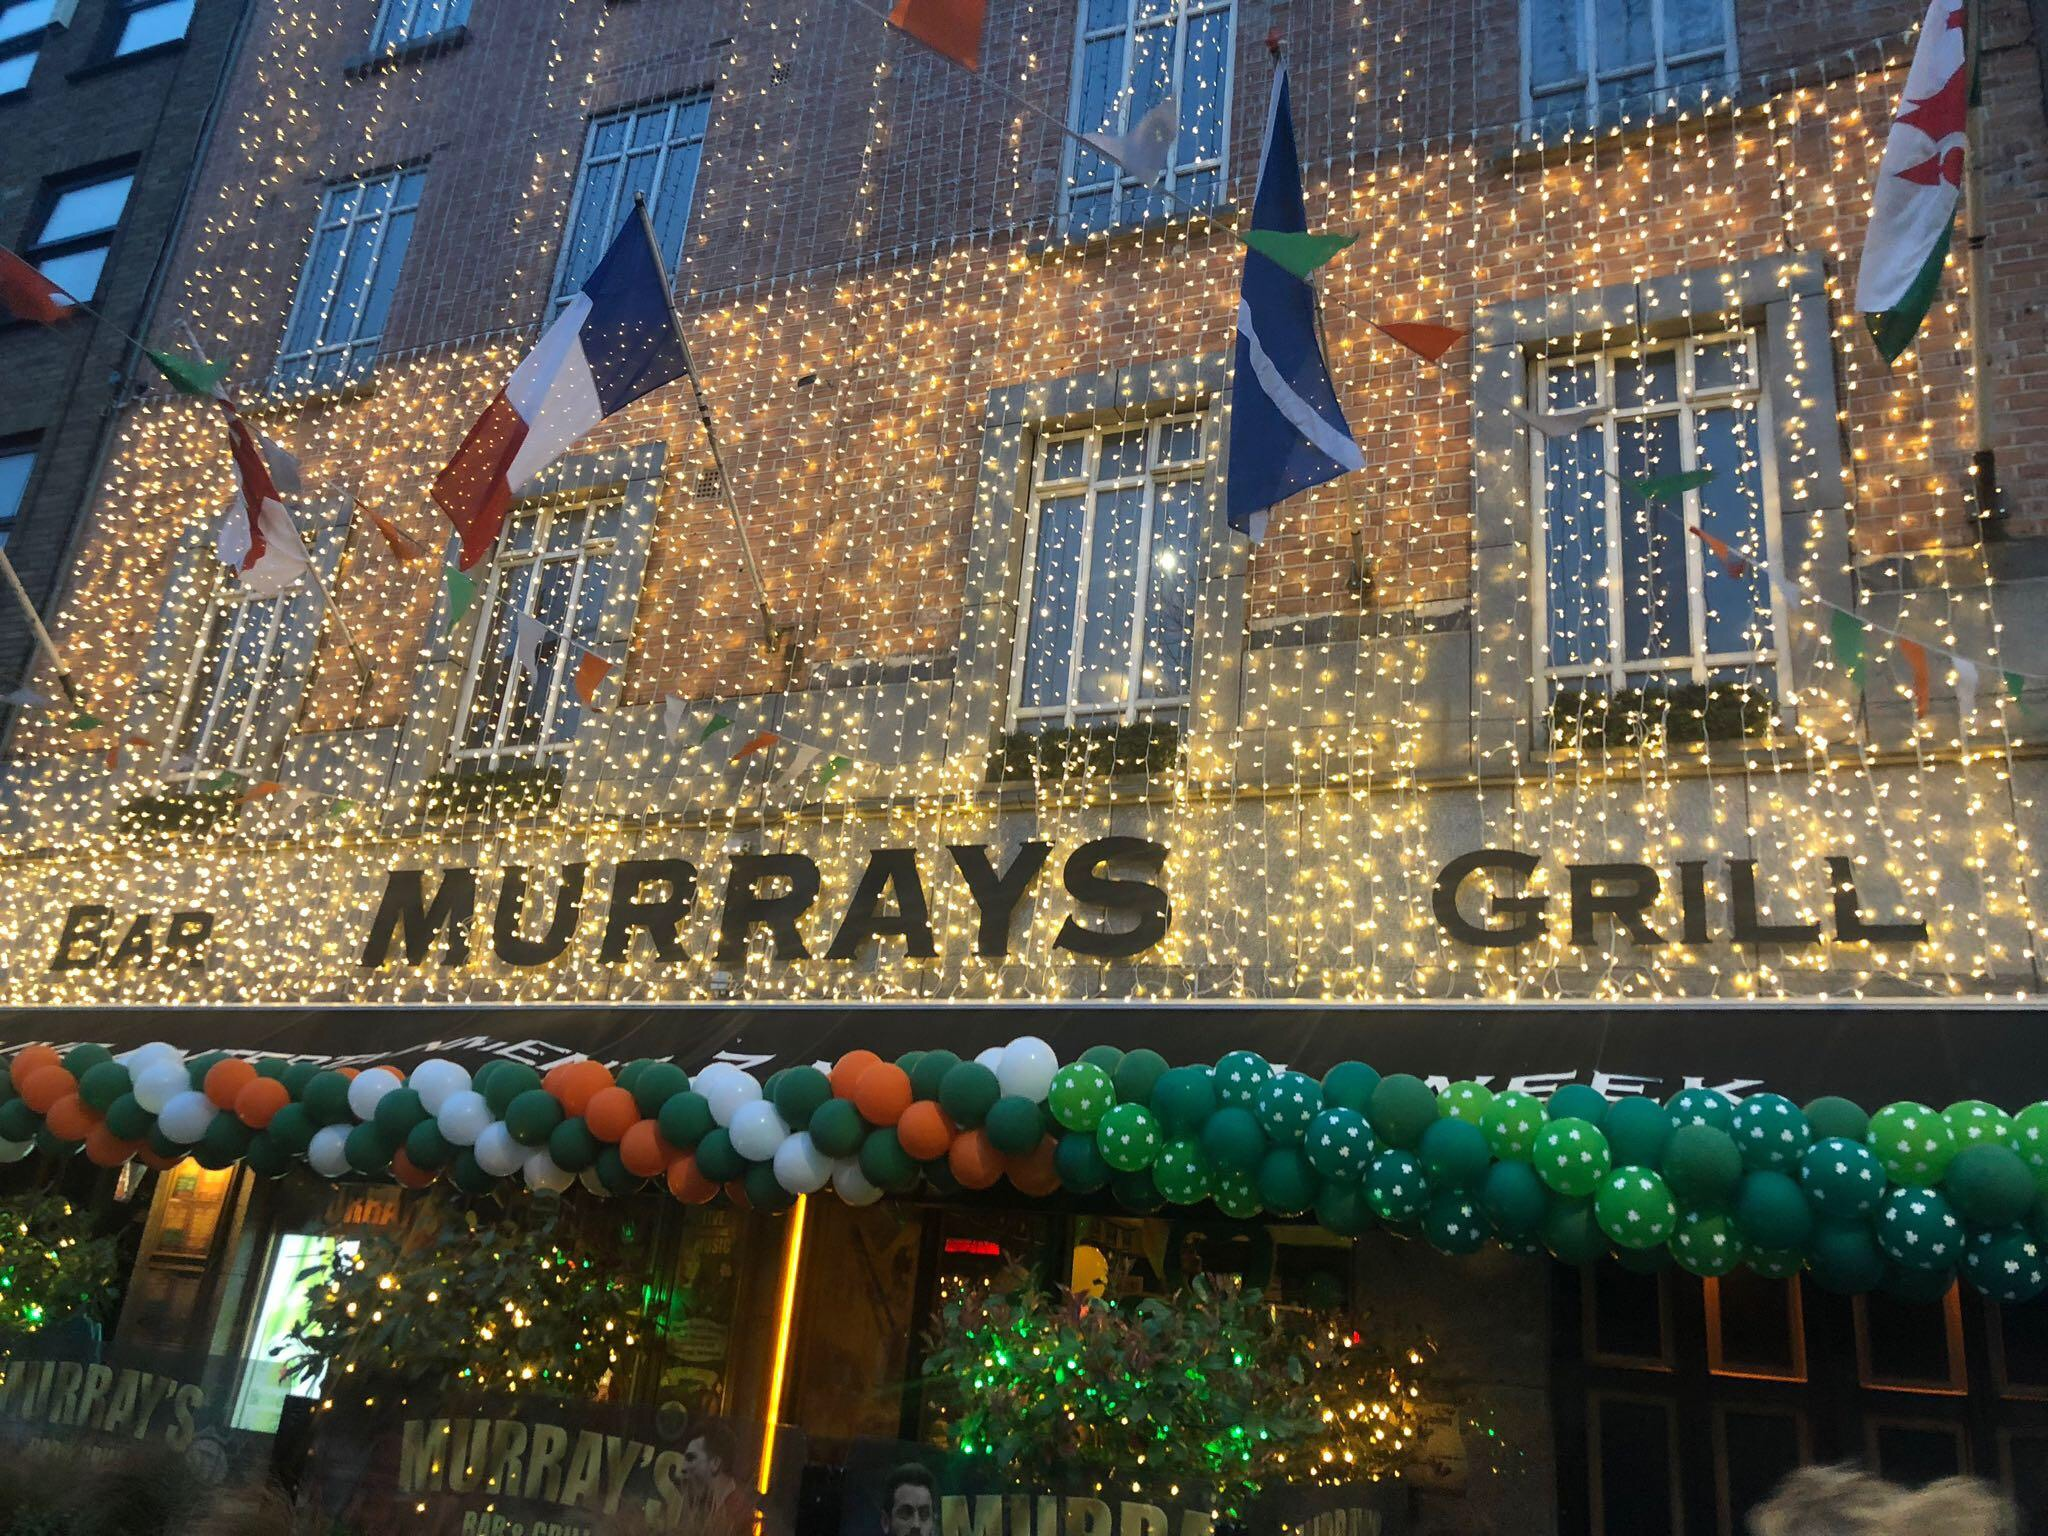 sign of Murray's Bar & Grill decorated for St. Patrick's Day with lights and balloons